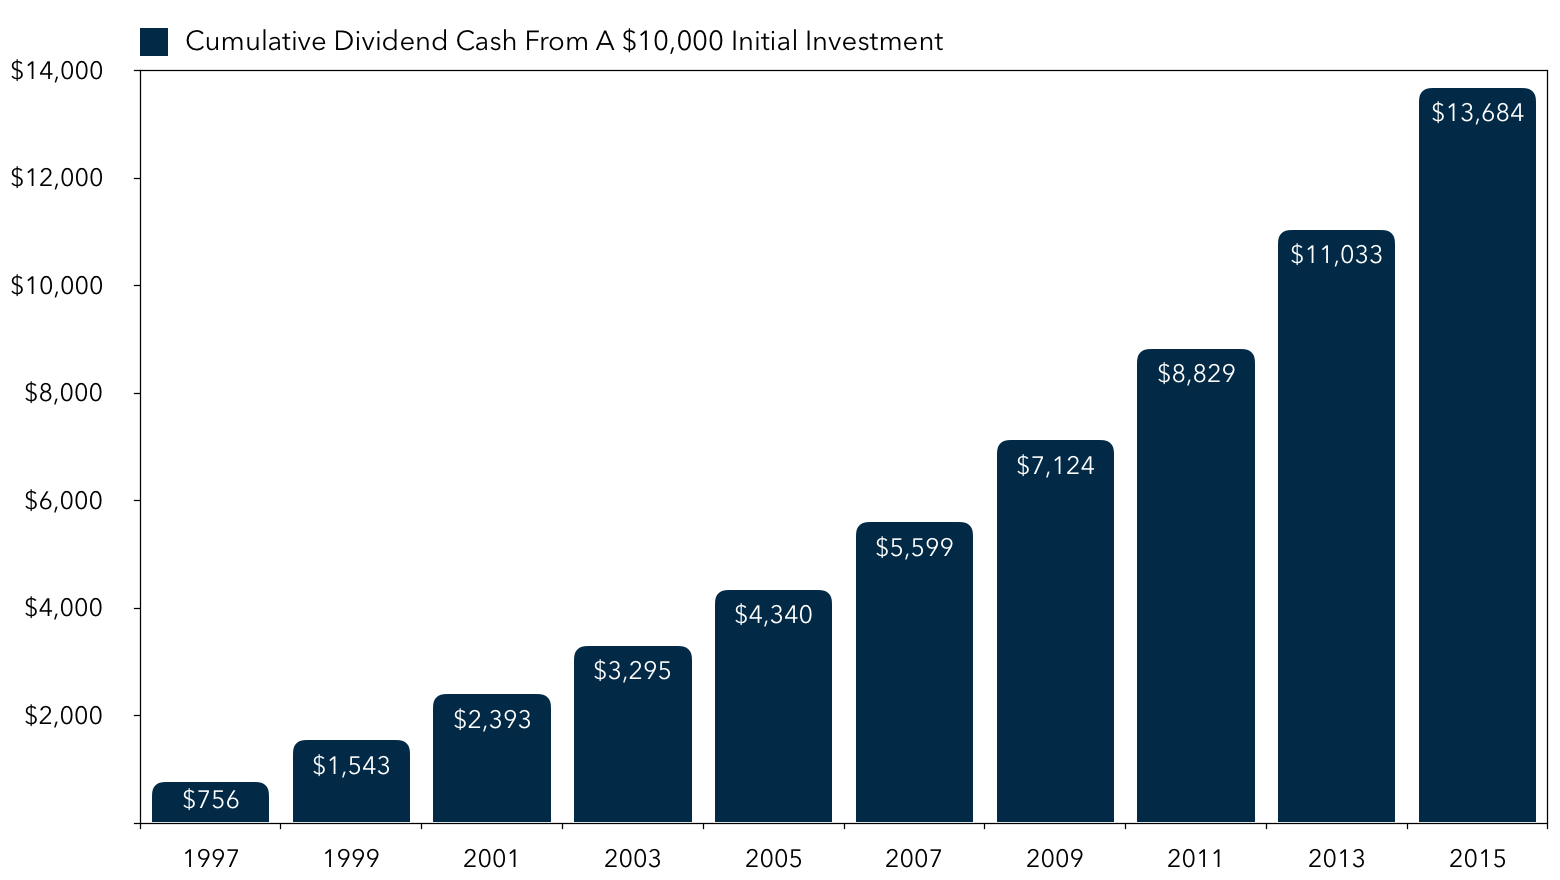 Exxon Mobil Dividend Cash From a $10,000 Investment